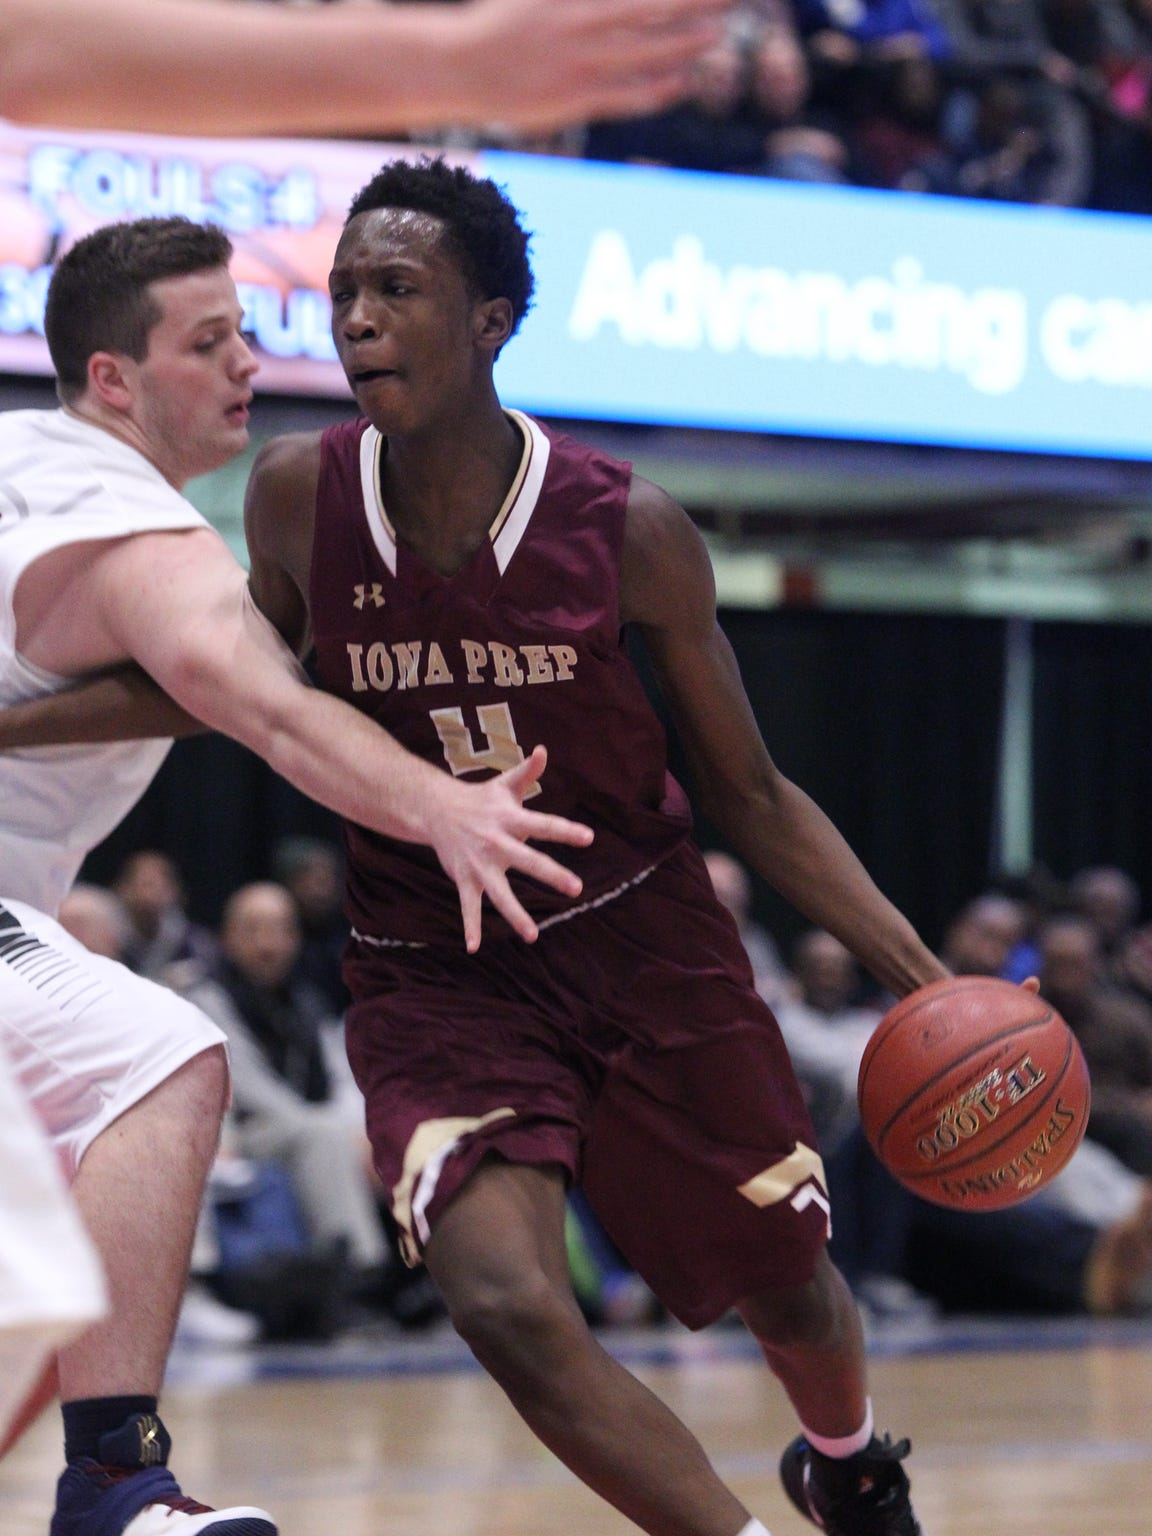 Iona Prep vs. Byram Hills in a semifinal game of the